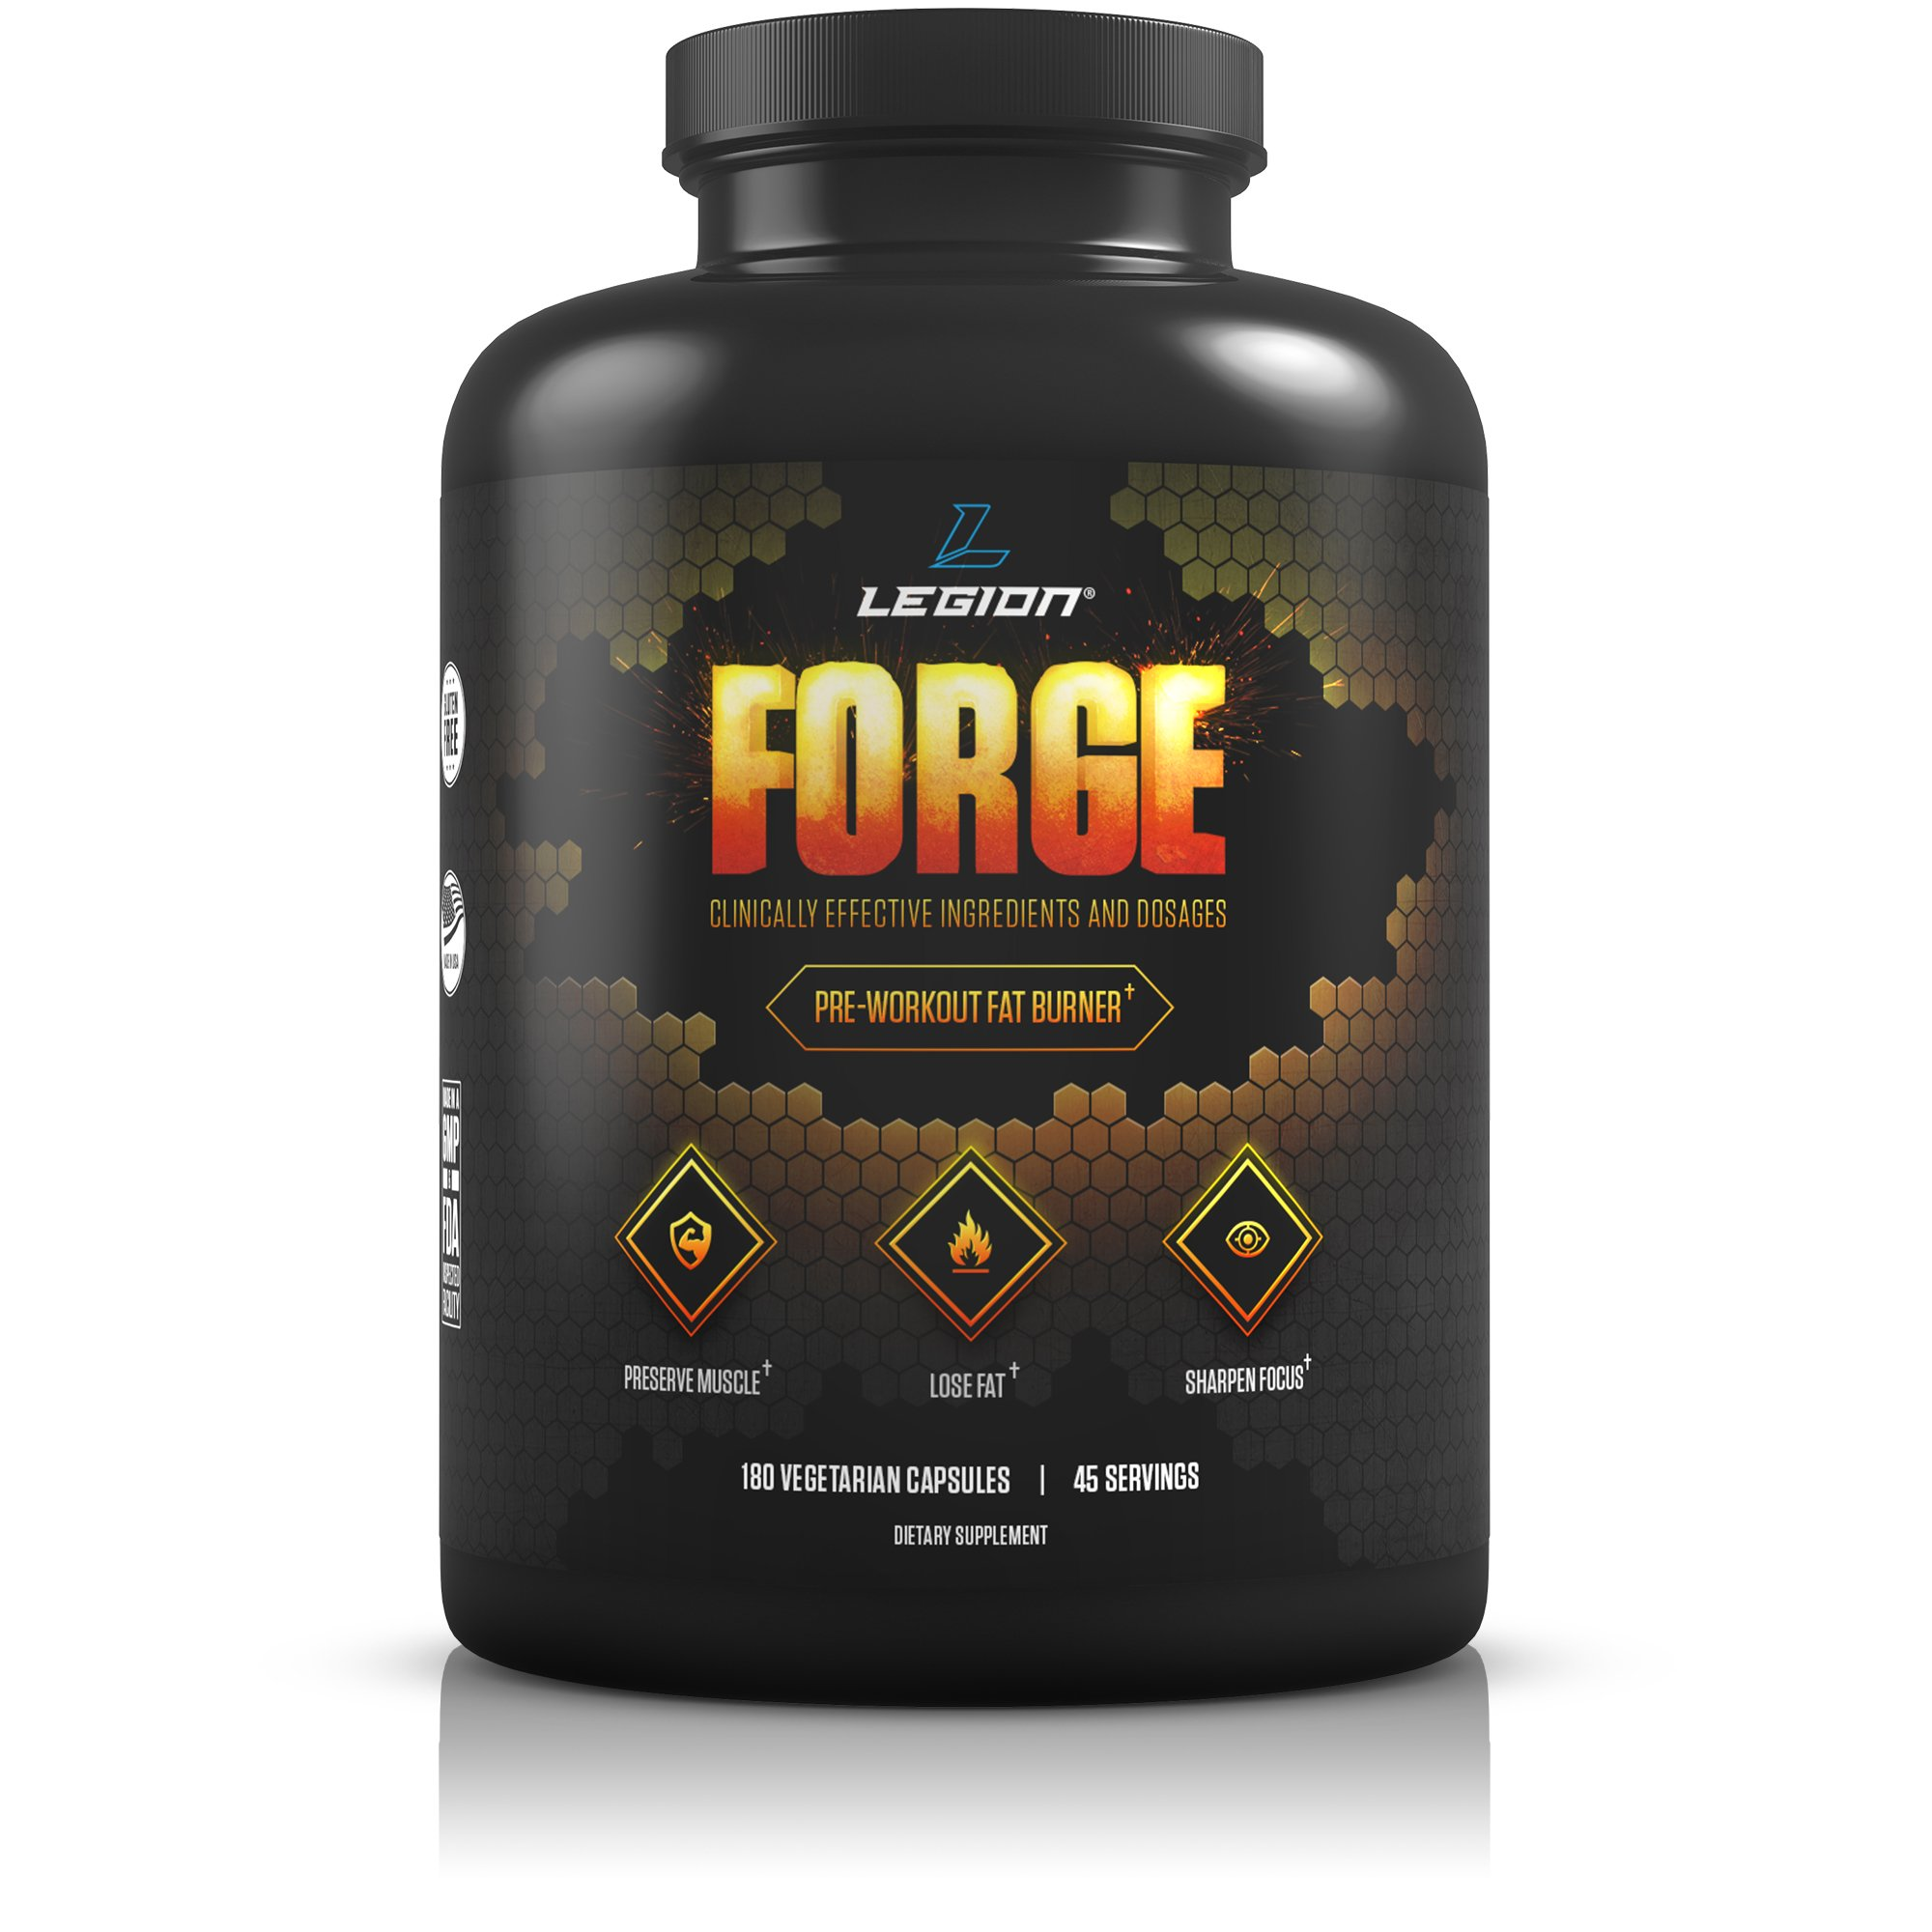 Legion Forge Belly Fat Burner - Lose Your Love Handles, Get a Flat Stomach and Trimmer Waist Fast. Helps With Stubborn Leg & Butt Fat Too! With Yohimbe, HMB, Choline. All Natural, 45 Servings. by Legion Athletics